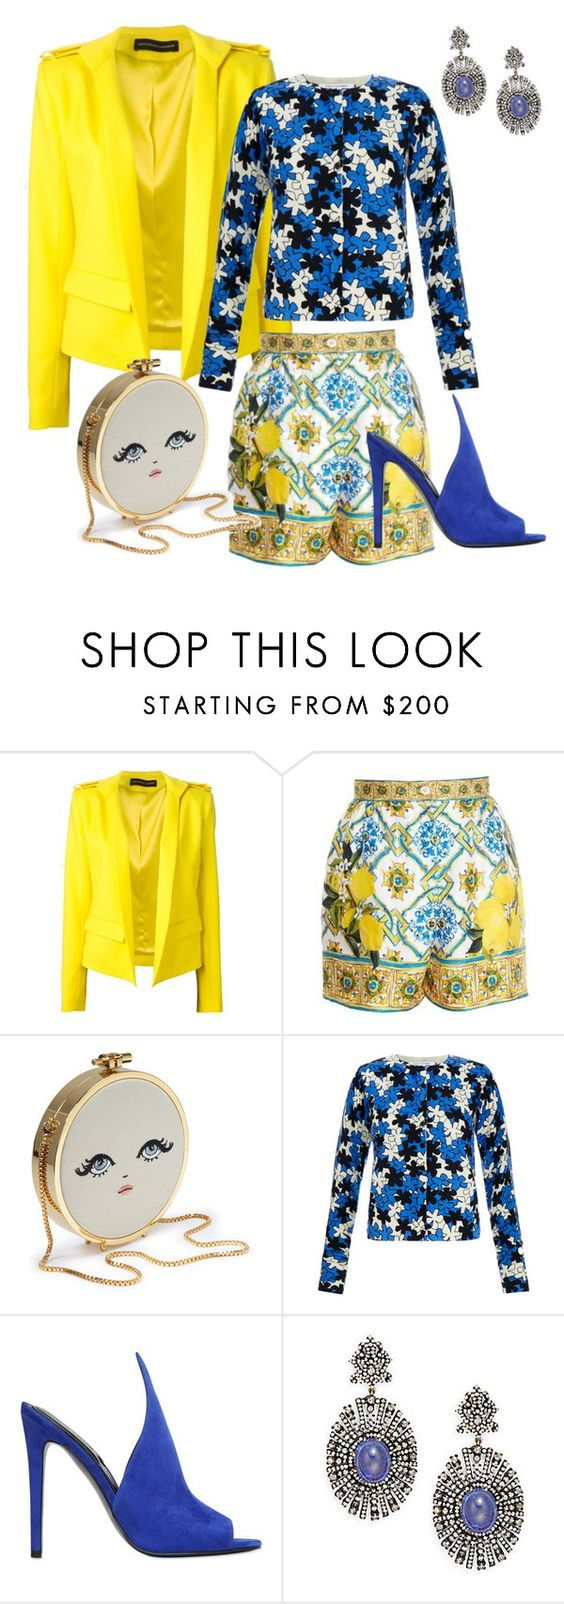 """""""Mixed Fancy"""" by collinsjclaire ❤ liked on Polyvore featuring Alexandre Vauthier, Dolce&Gabbana, Diane Von Furstenberg, Kendall + Kylie and Bavna"""